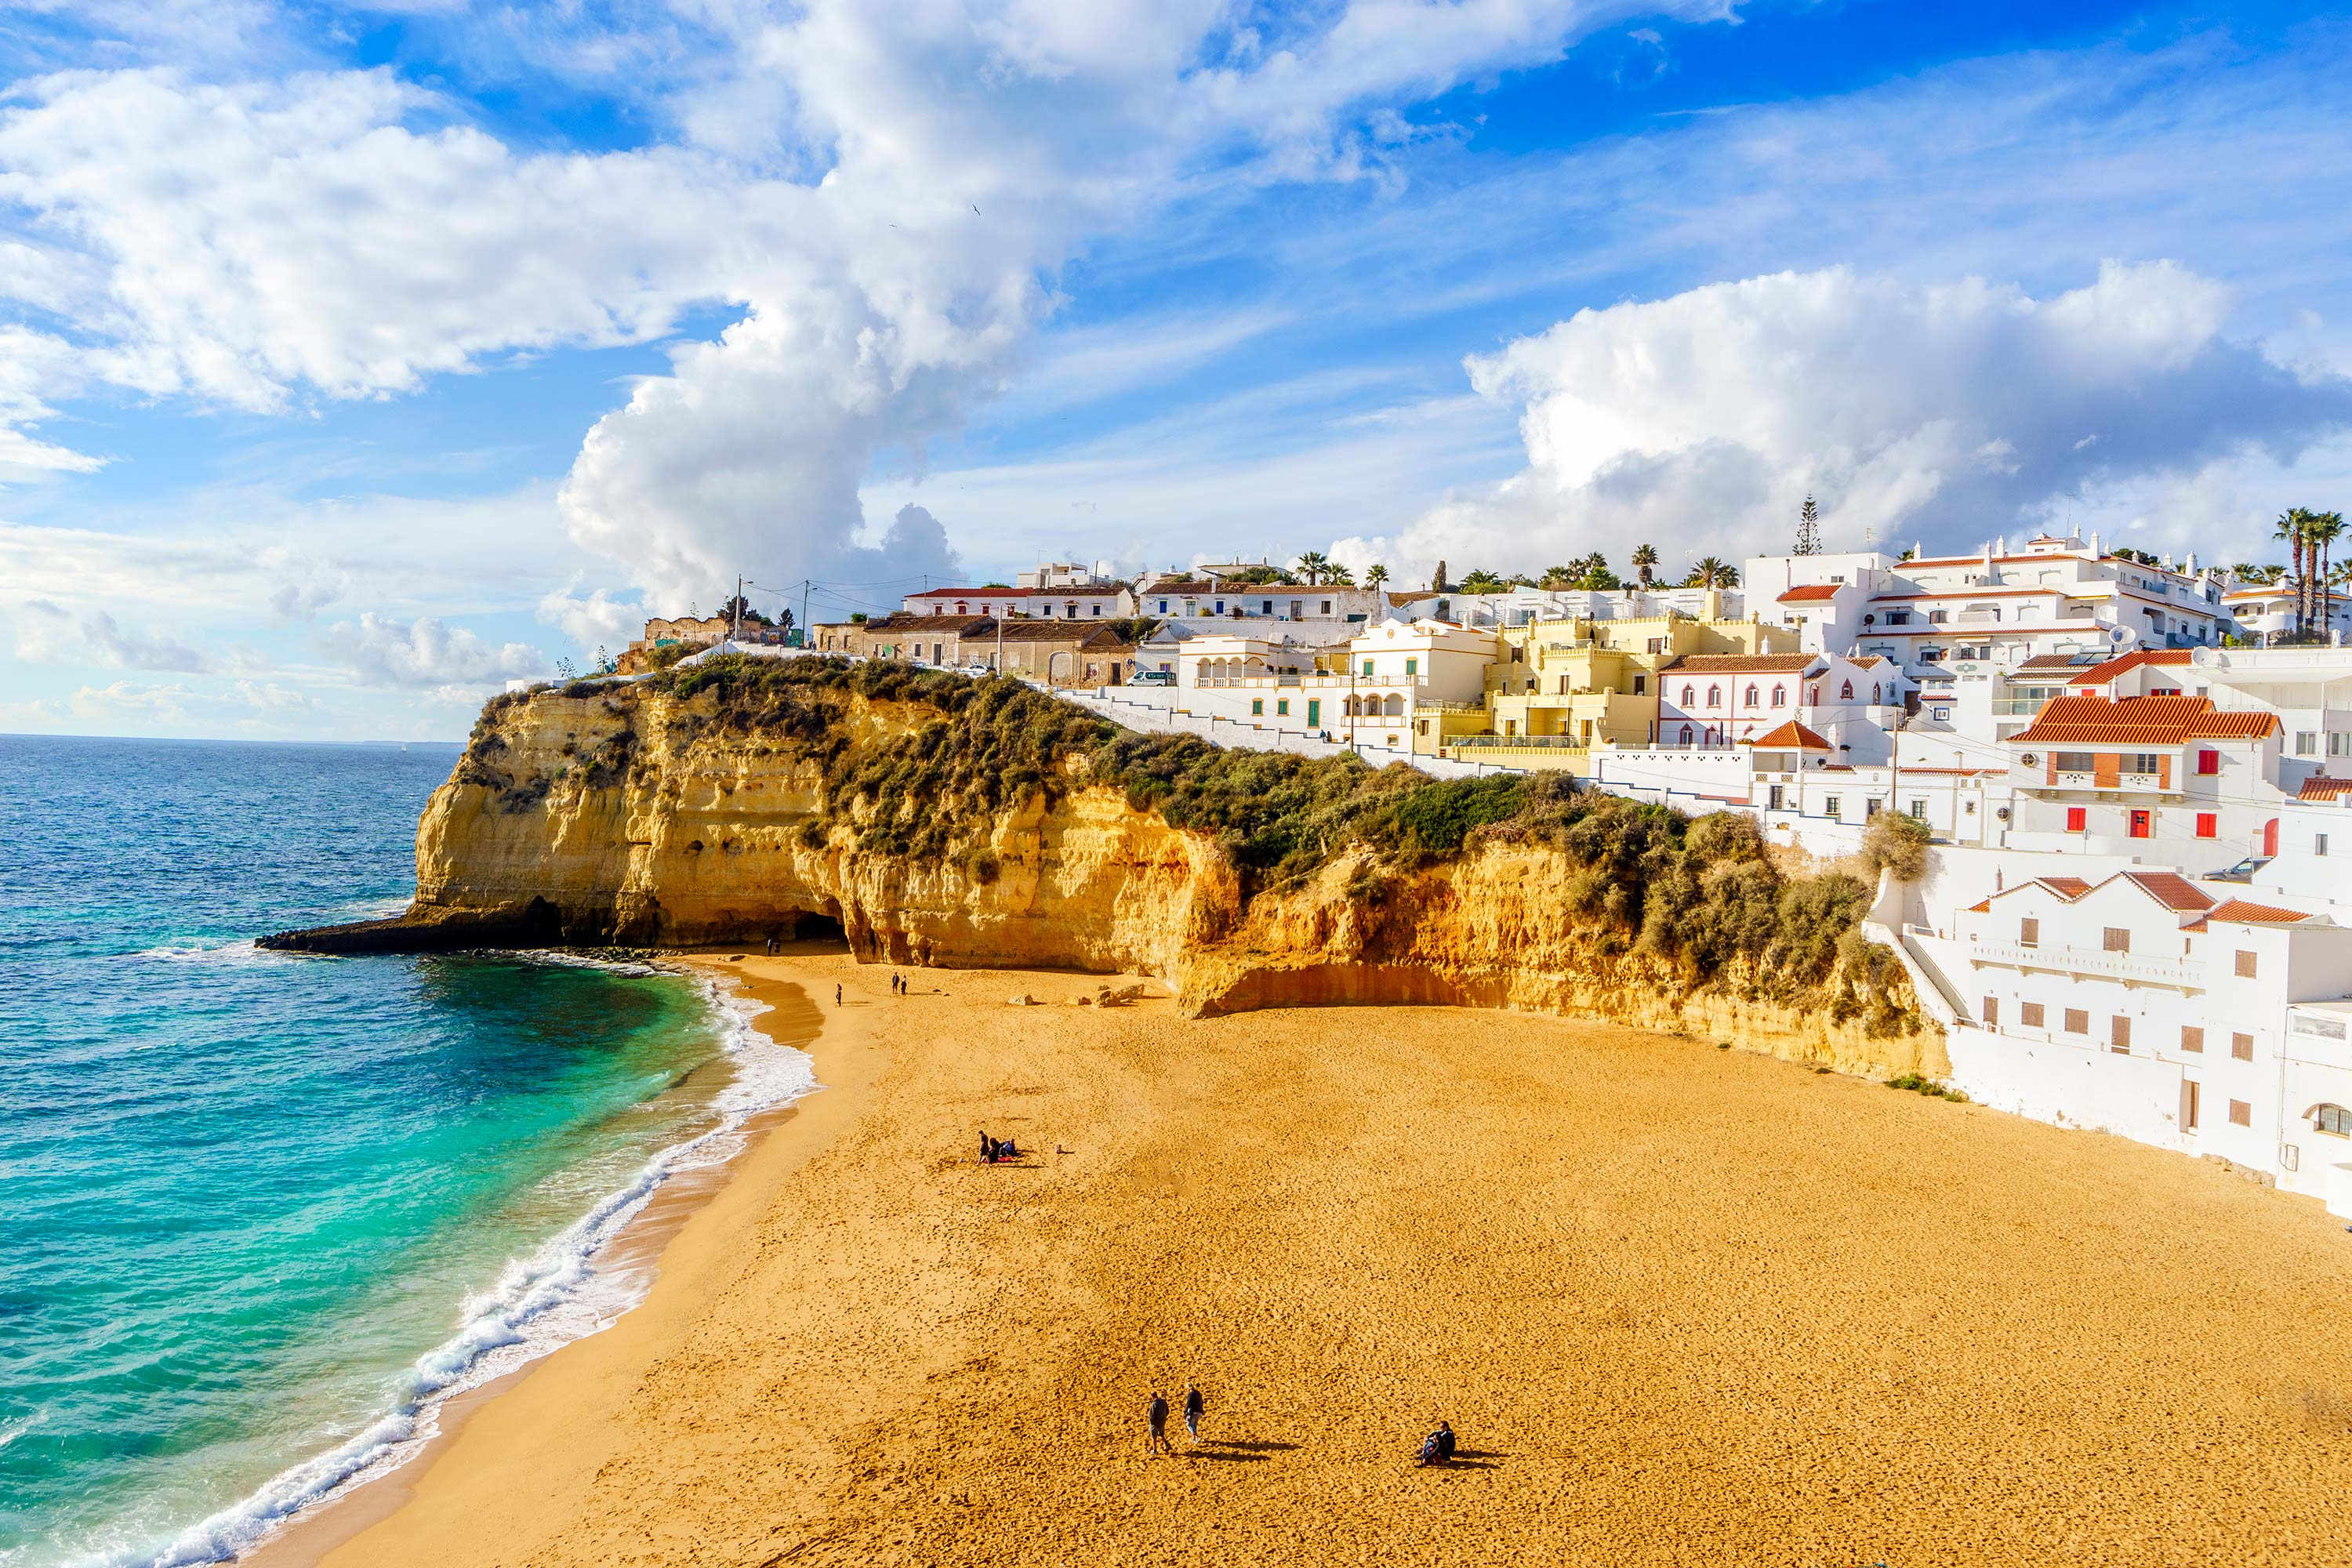 Image of Portugal beach in Carvoeiro, Algarve.